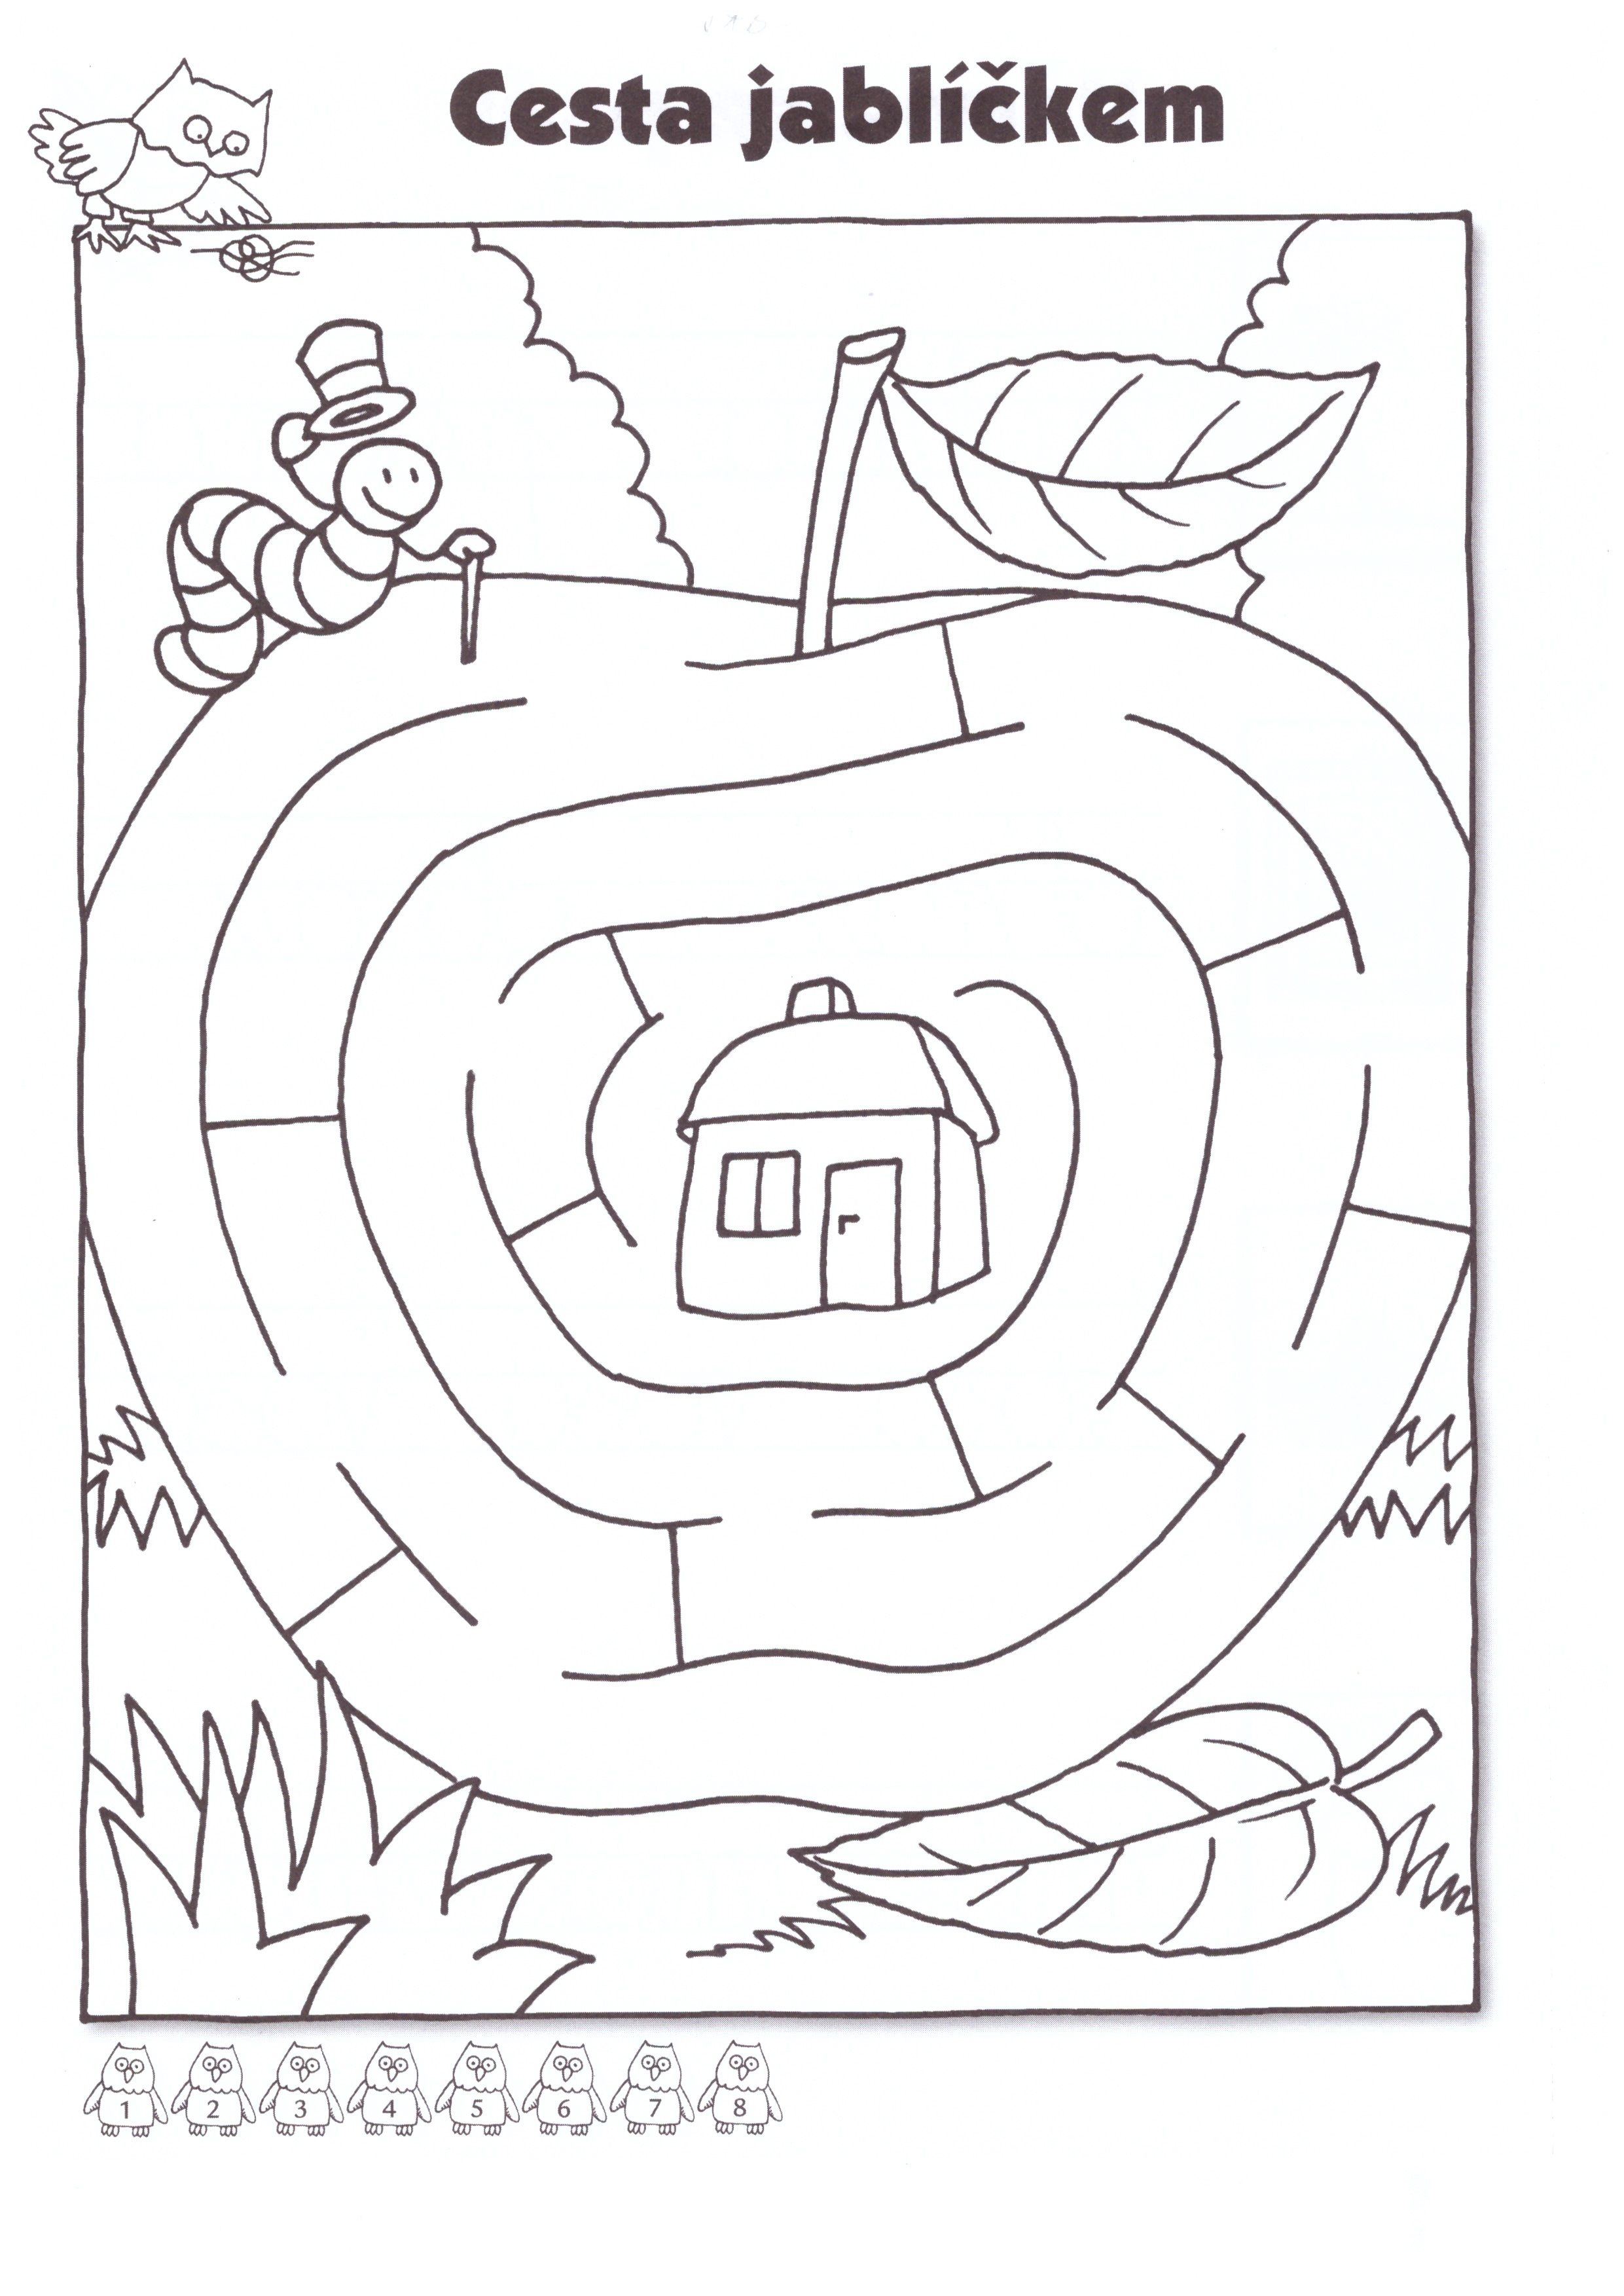 Preschool and kindergarten mazes printable worksheets a02a5b635cfeb9197bd1843ab992345cg 24813507 robcynllc Image collections